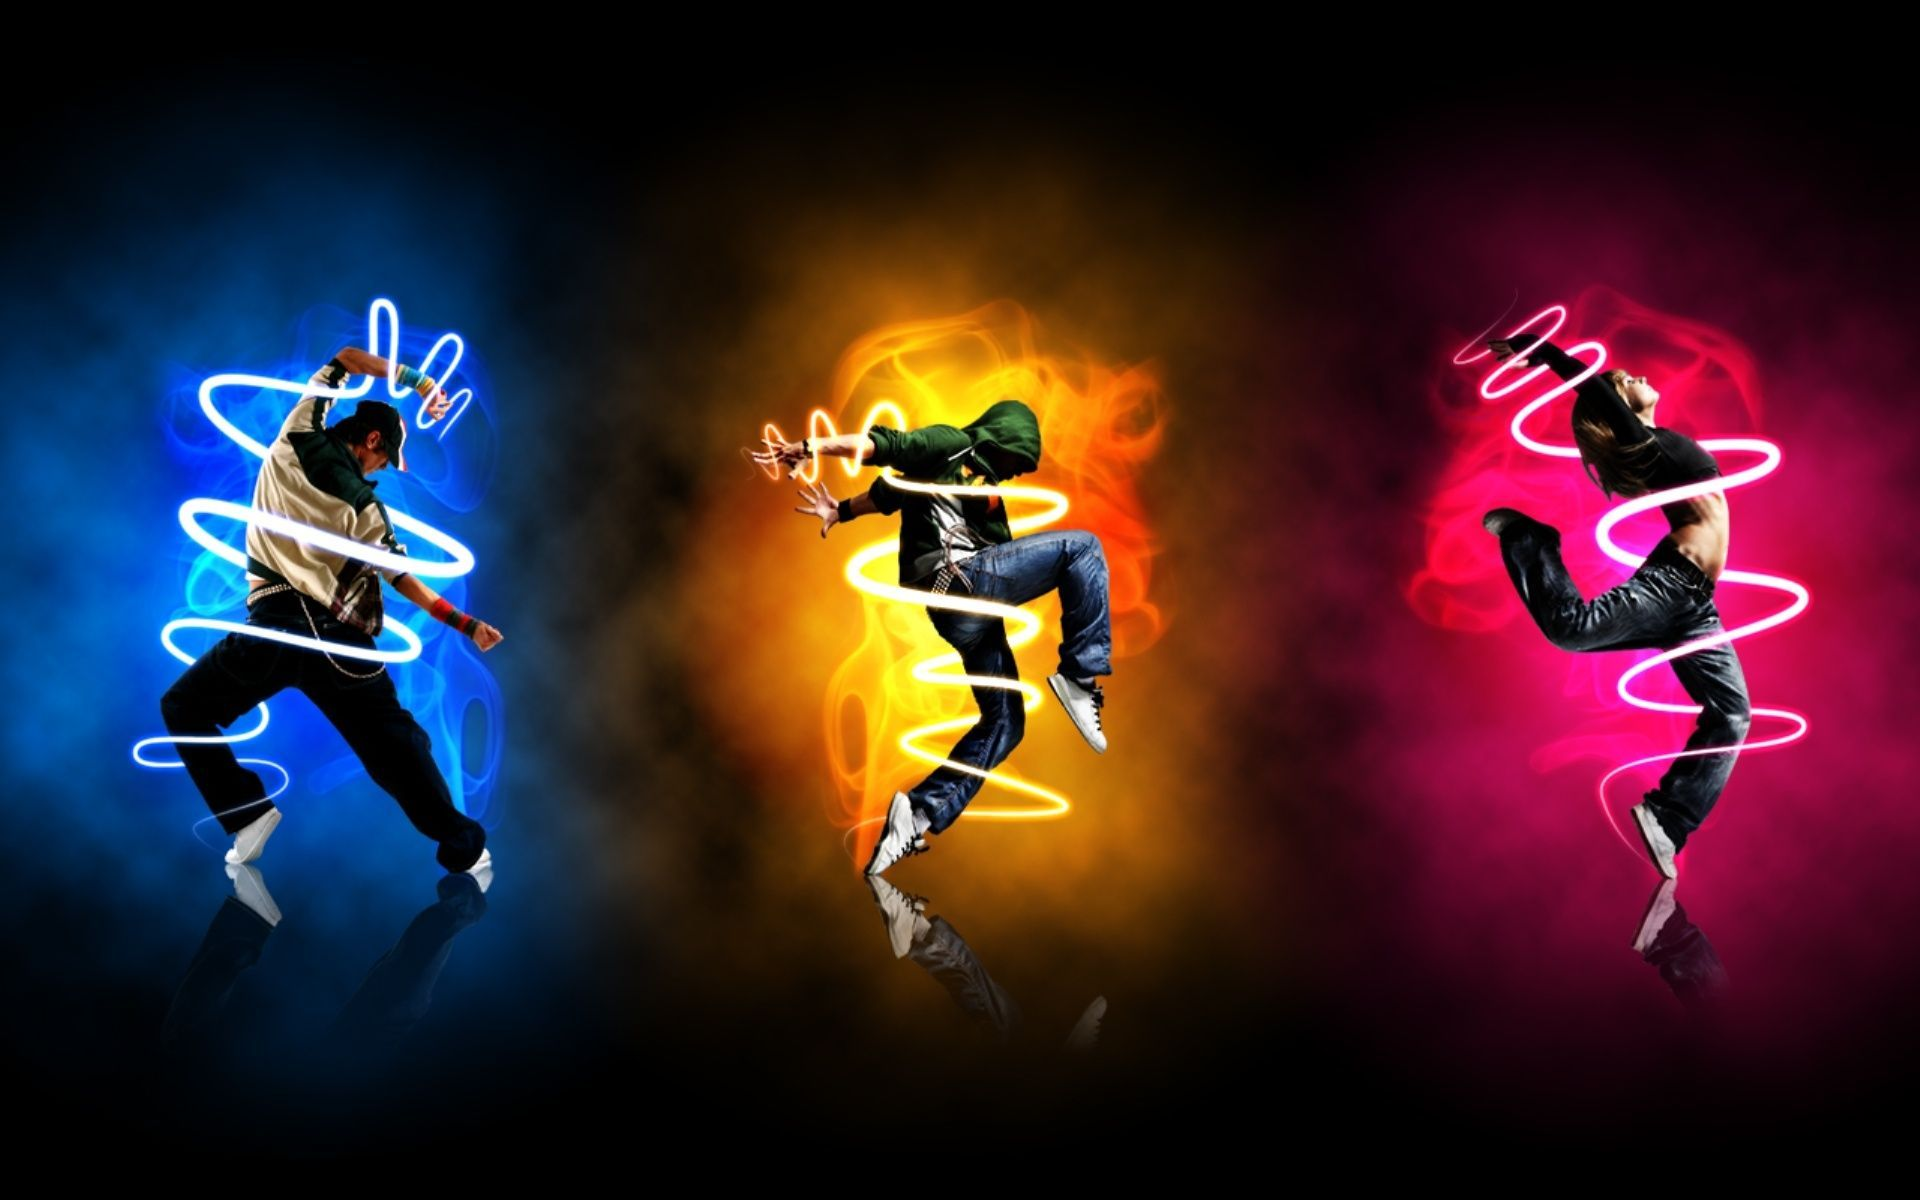 3d Name Wallpapers Software Free Download Download Zumba Dance Wallpaper Gallery